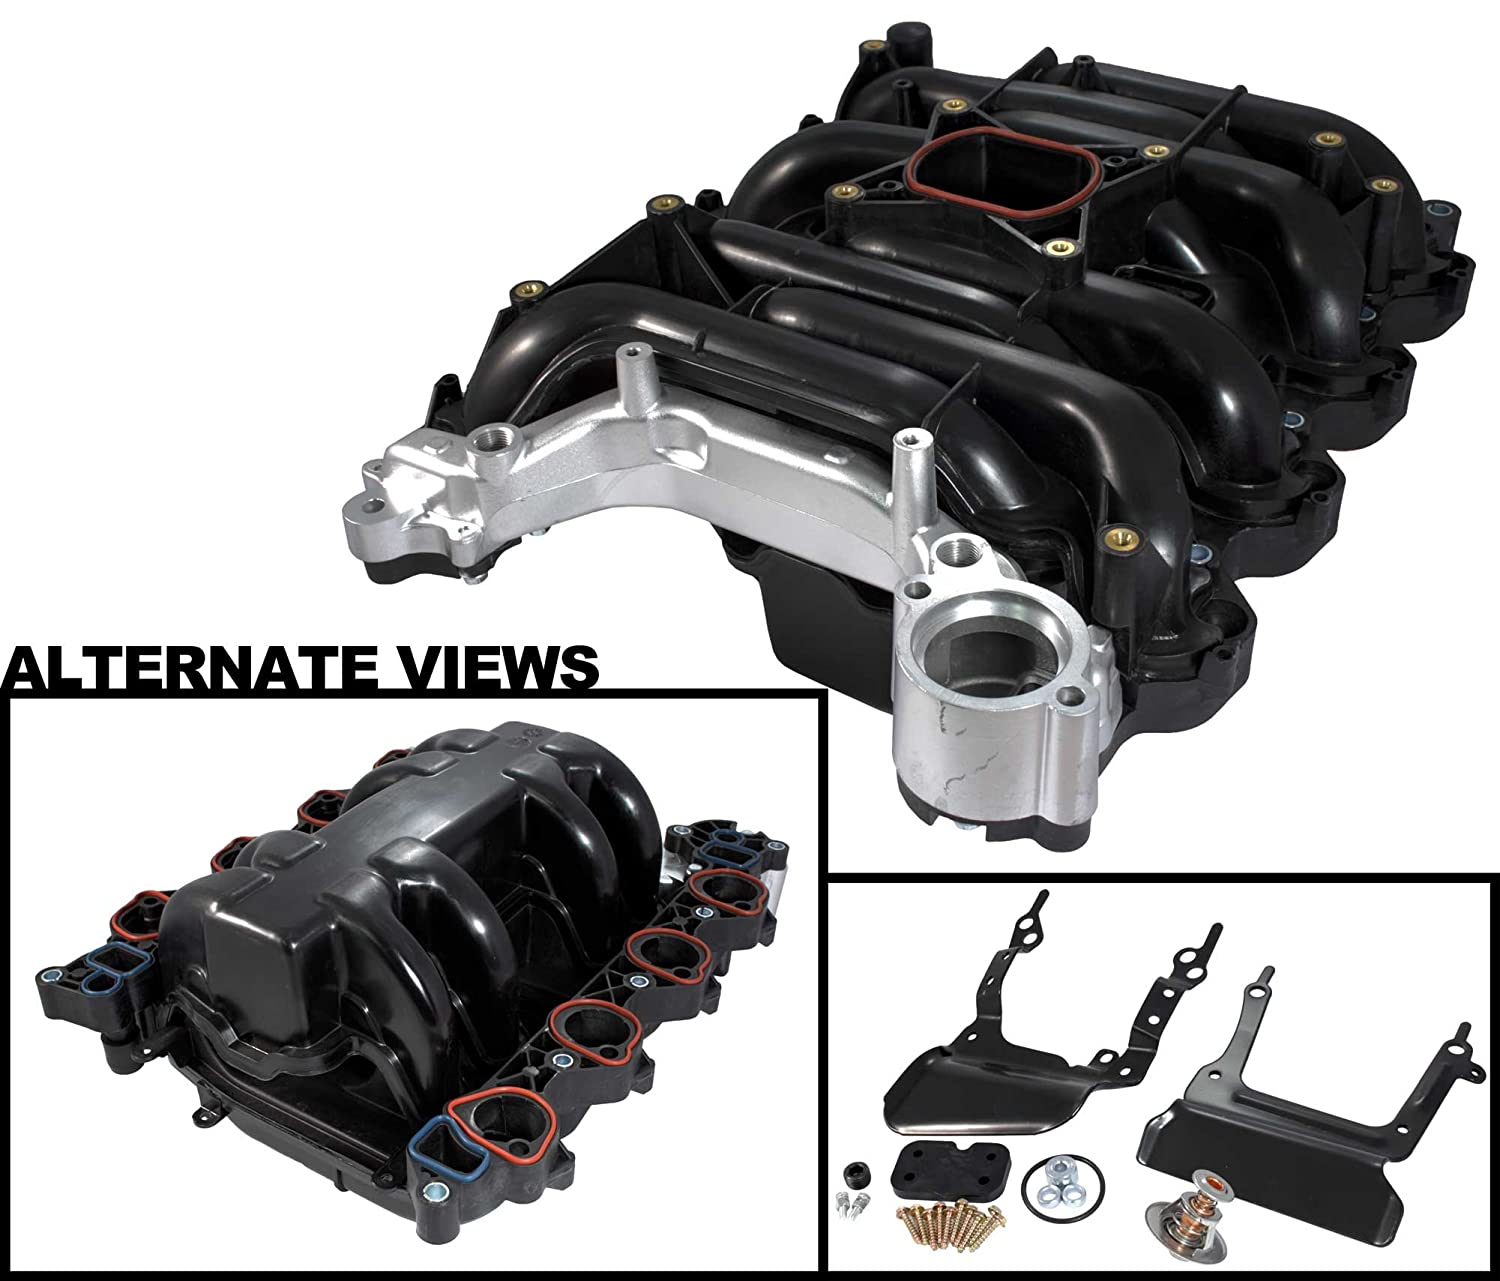 Amazon com apdty 726289 intake manifold assembly w gaskets upgraded heavy duty aluminum coolant crossover fits 96 1997 mercury cougar 4 6l 1996 2000